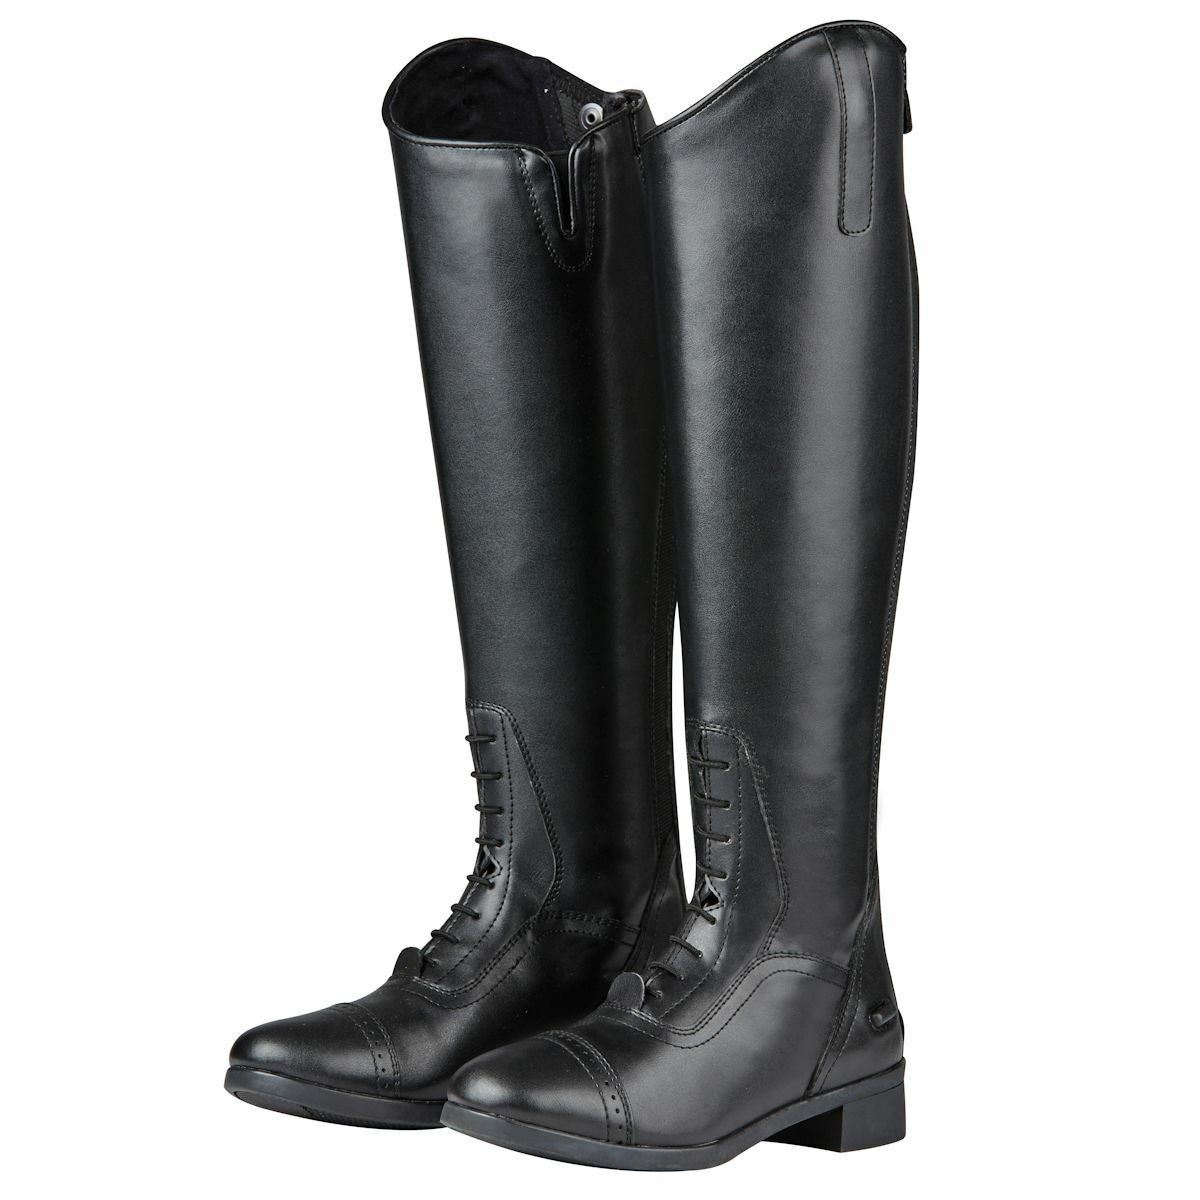 Saxon Syntovia Tall Field Stiefel YKK Zip Leder Look